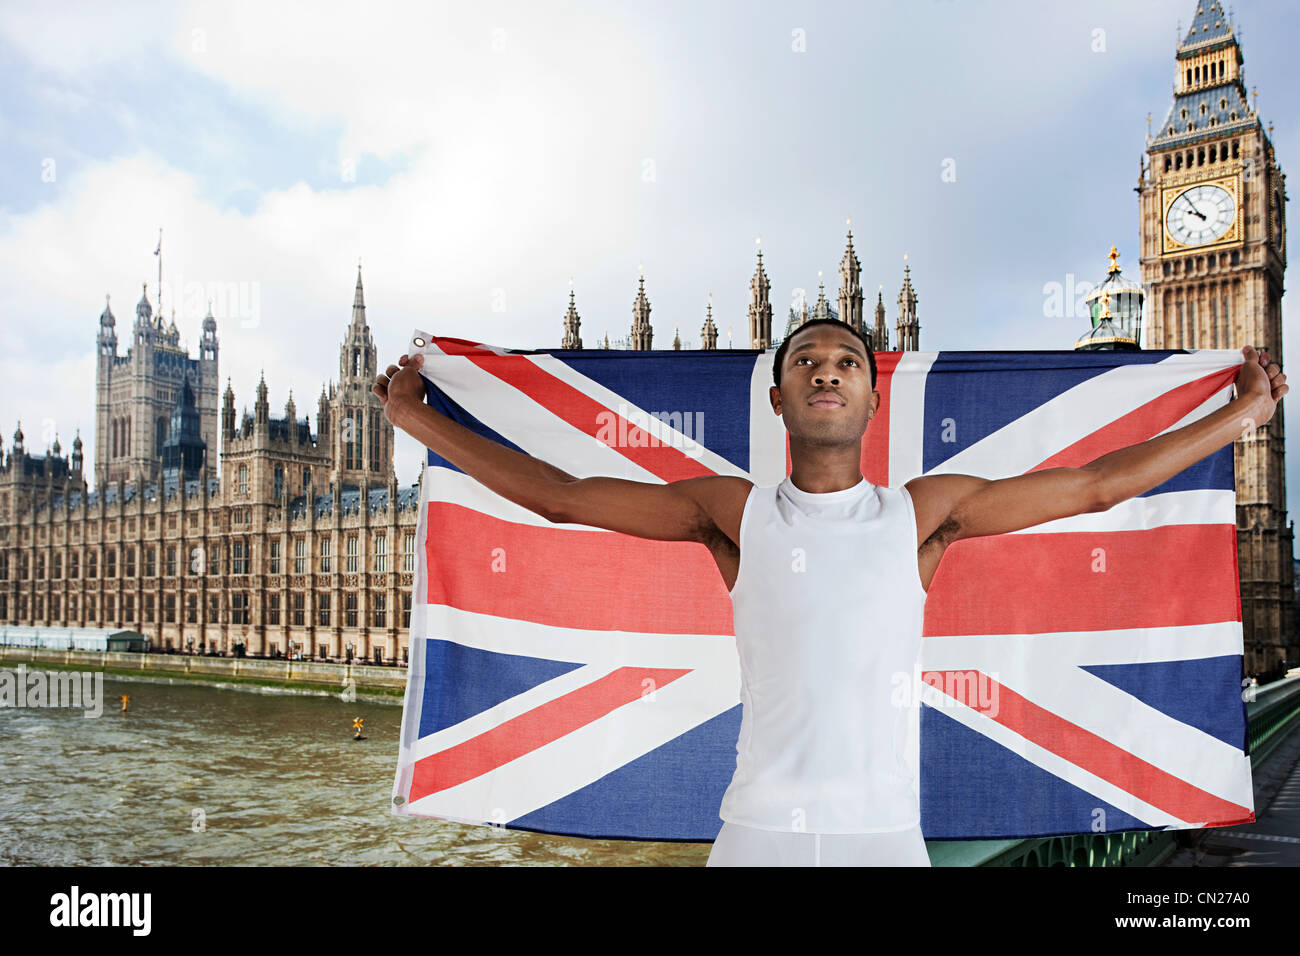 Olympic competitor with Union Jack in front of Houses of Parliament, London, England - Stock Image